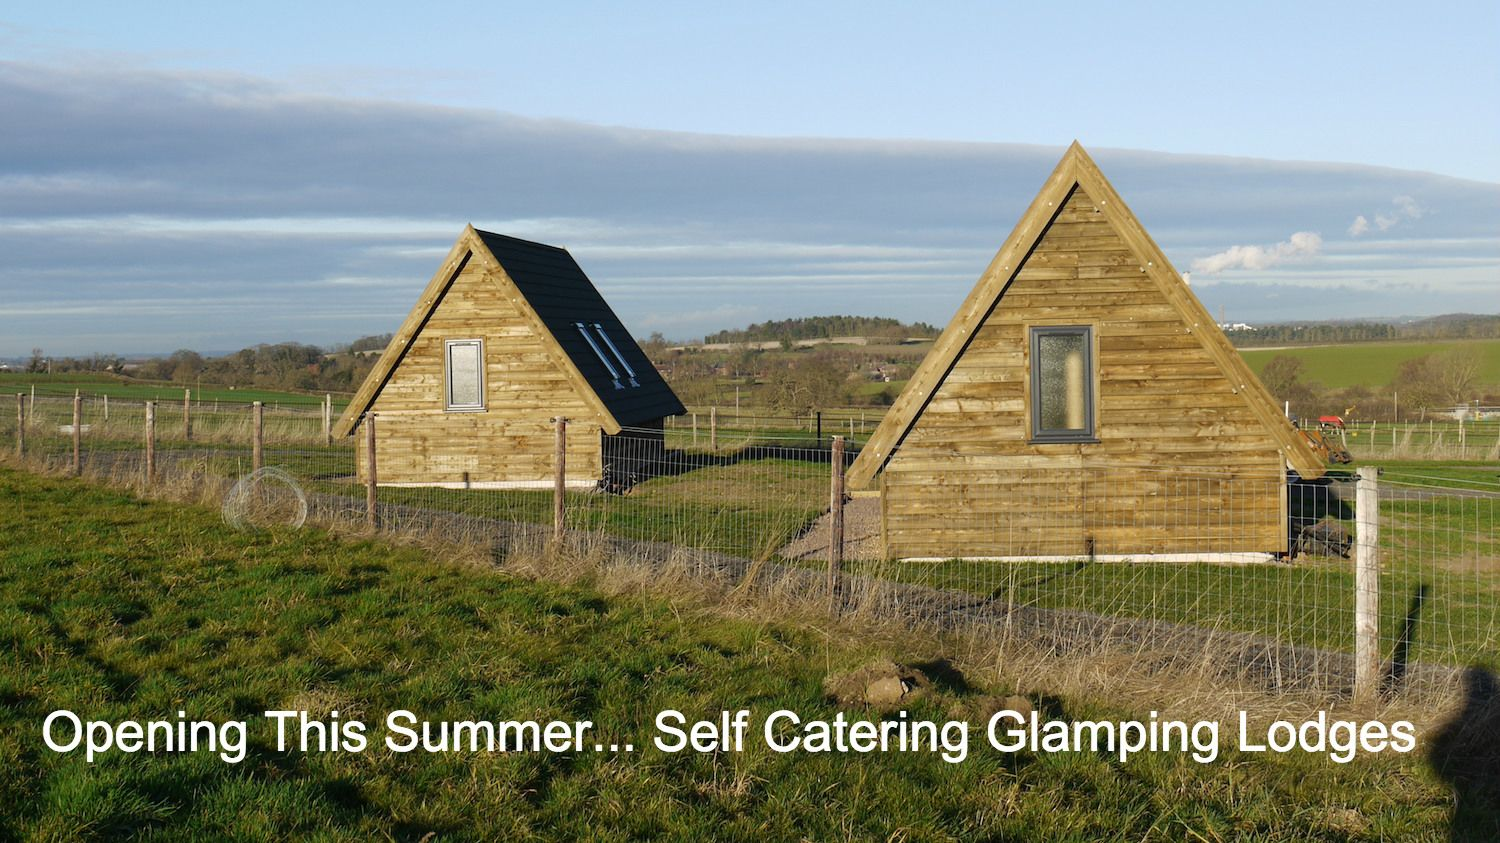 glamping-lodges-view-caption